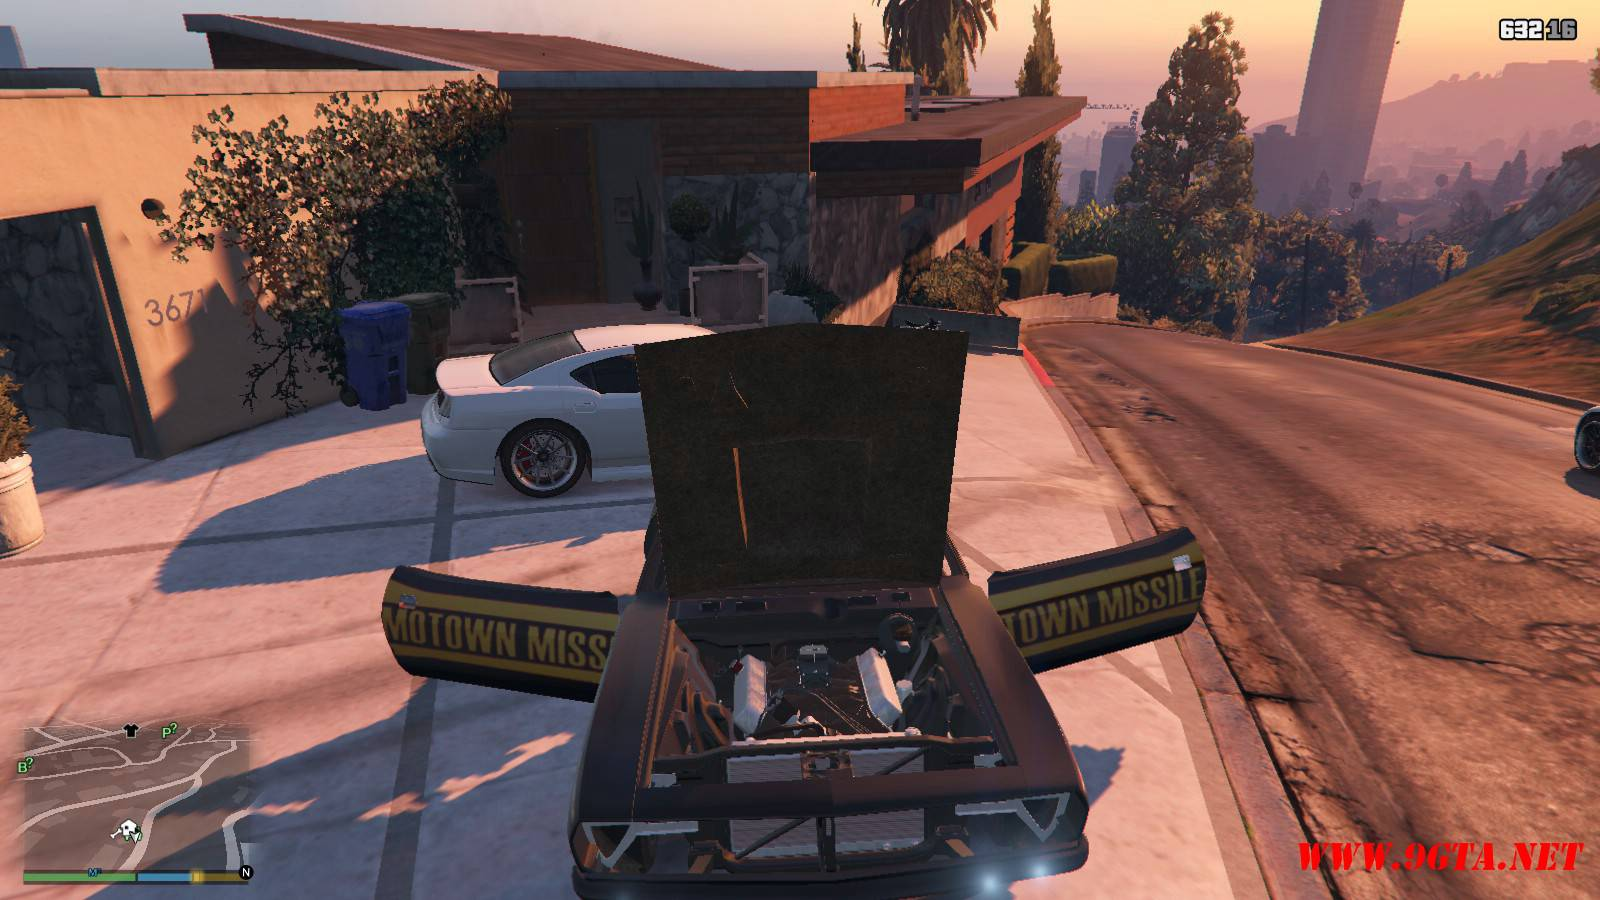 Plymouth Kuda Beck Customs Mod For GTA5 (13)